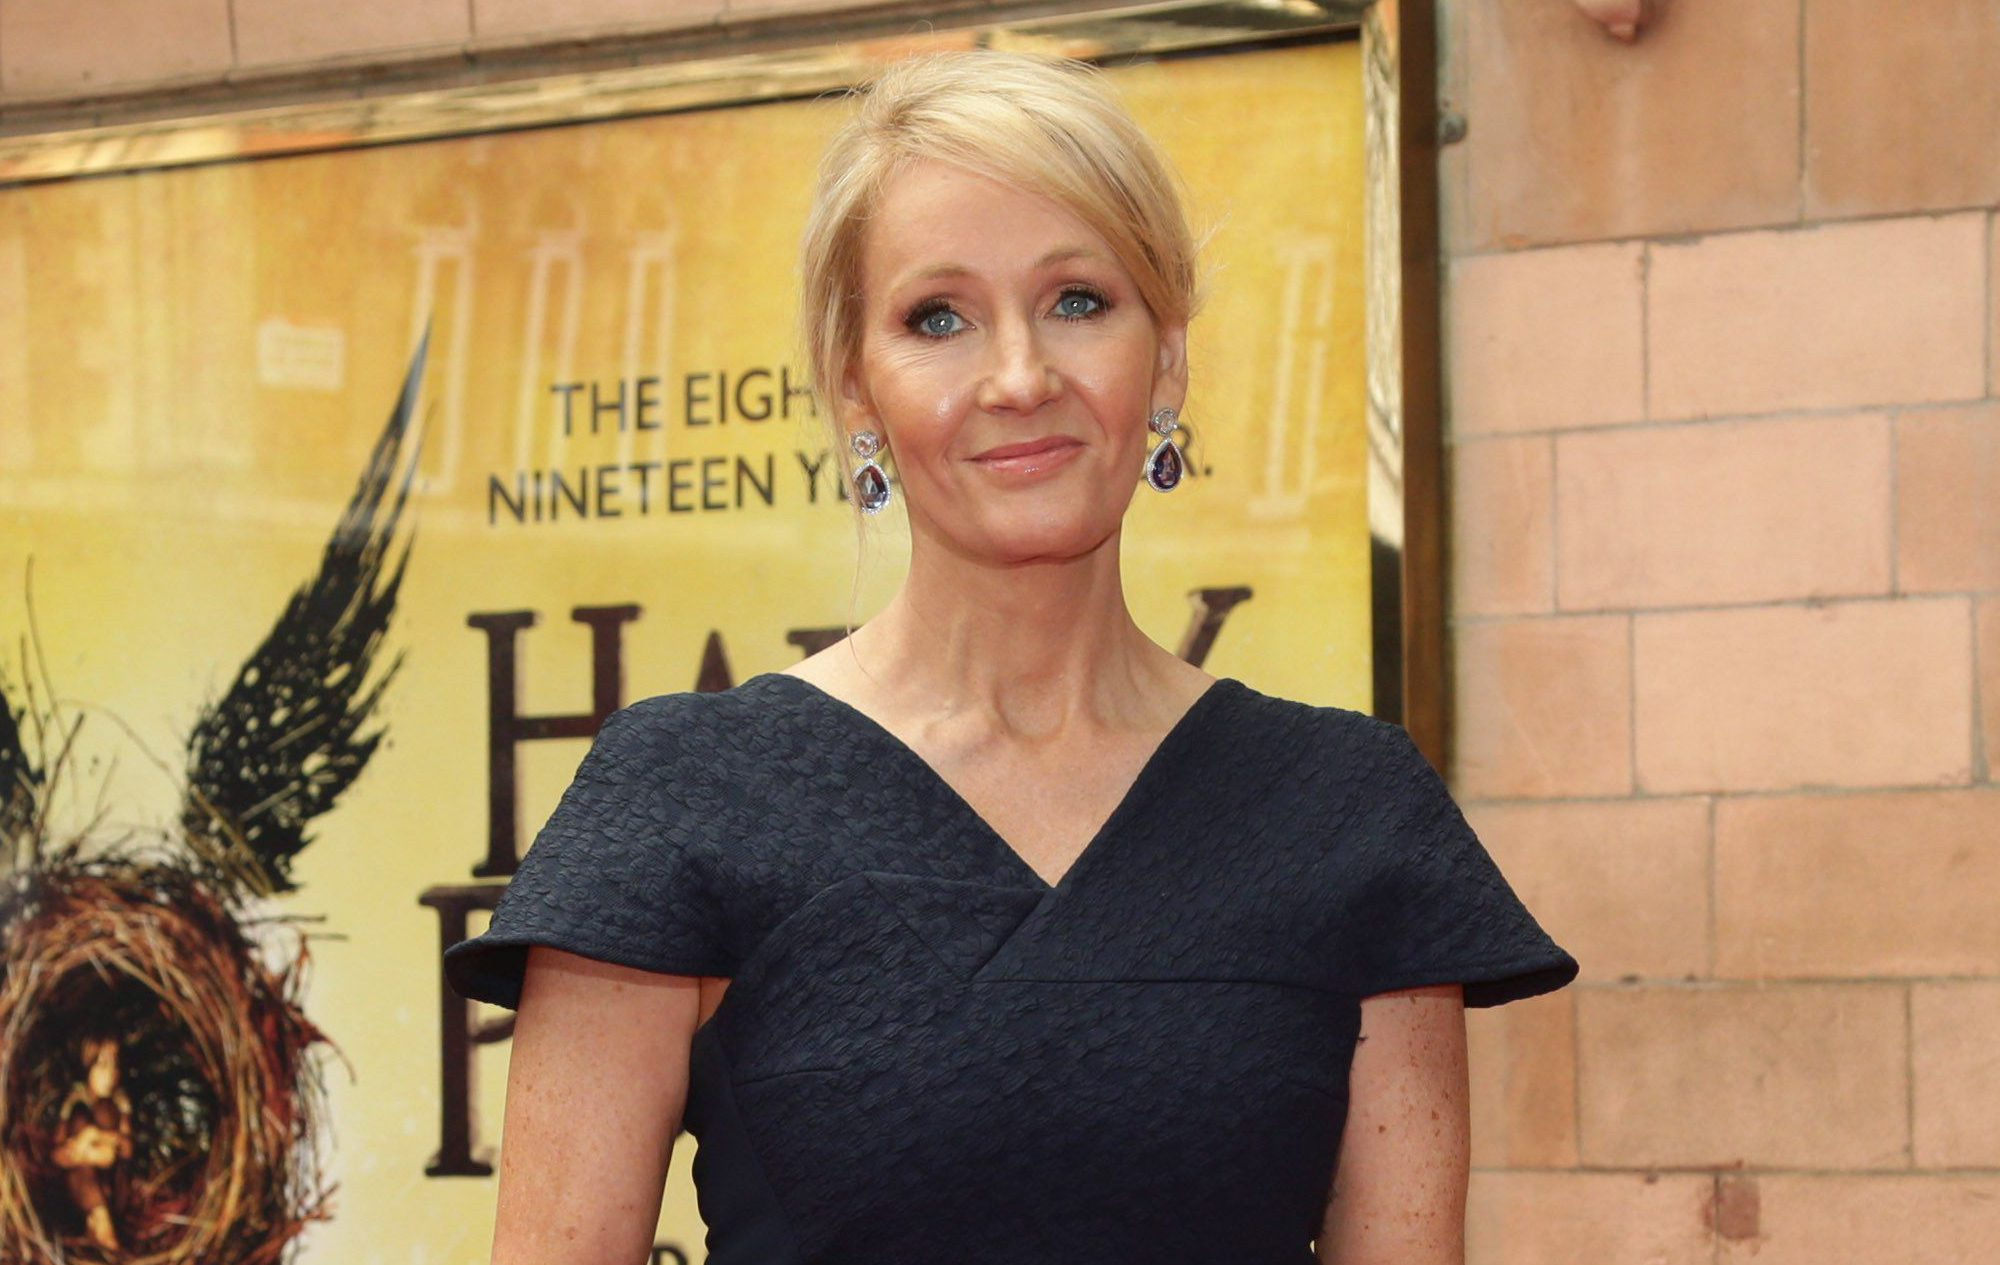 JK Rowling arriving for the opening gala performance of Harry Potter and The Cursed Child, at the Palace Theatre in London. PRESS ASSOCIATION Photo. Picture date: Saturday July 30, 2016. See PA story SHOWBIZ Potter. Photo credit should read: Yui Mok/PA Wire